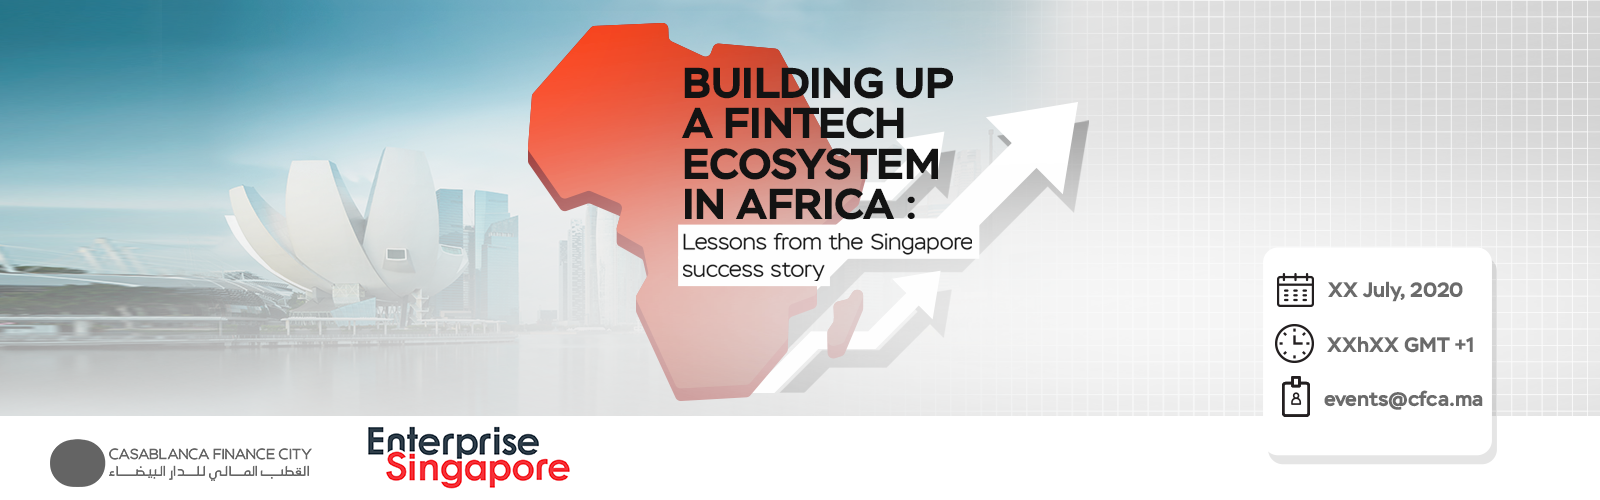 Building up a Fintech Ecosystem in Africa